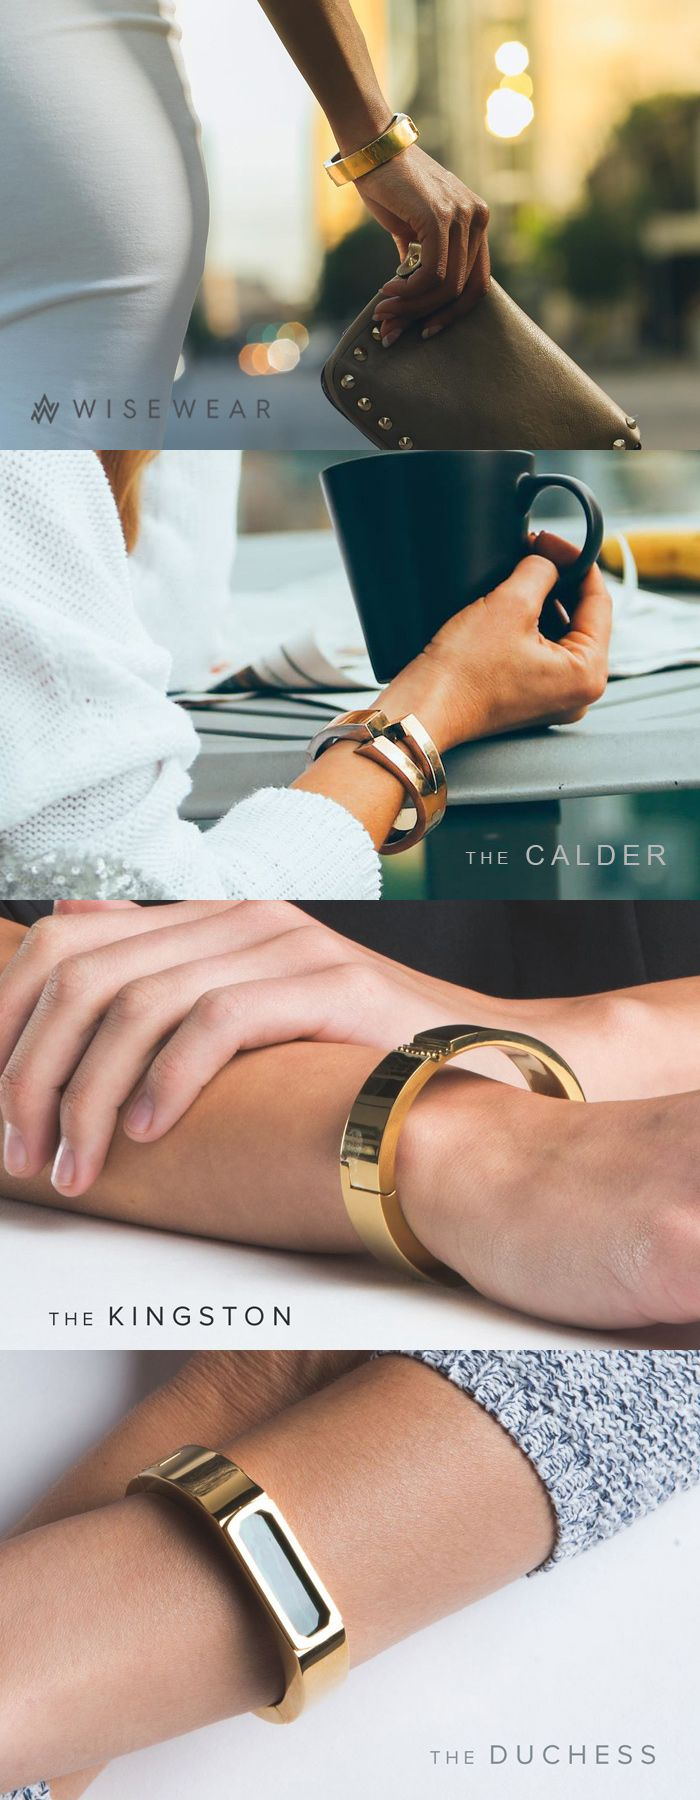 WiseWear Smart Bracelets - Function Meets Fashion